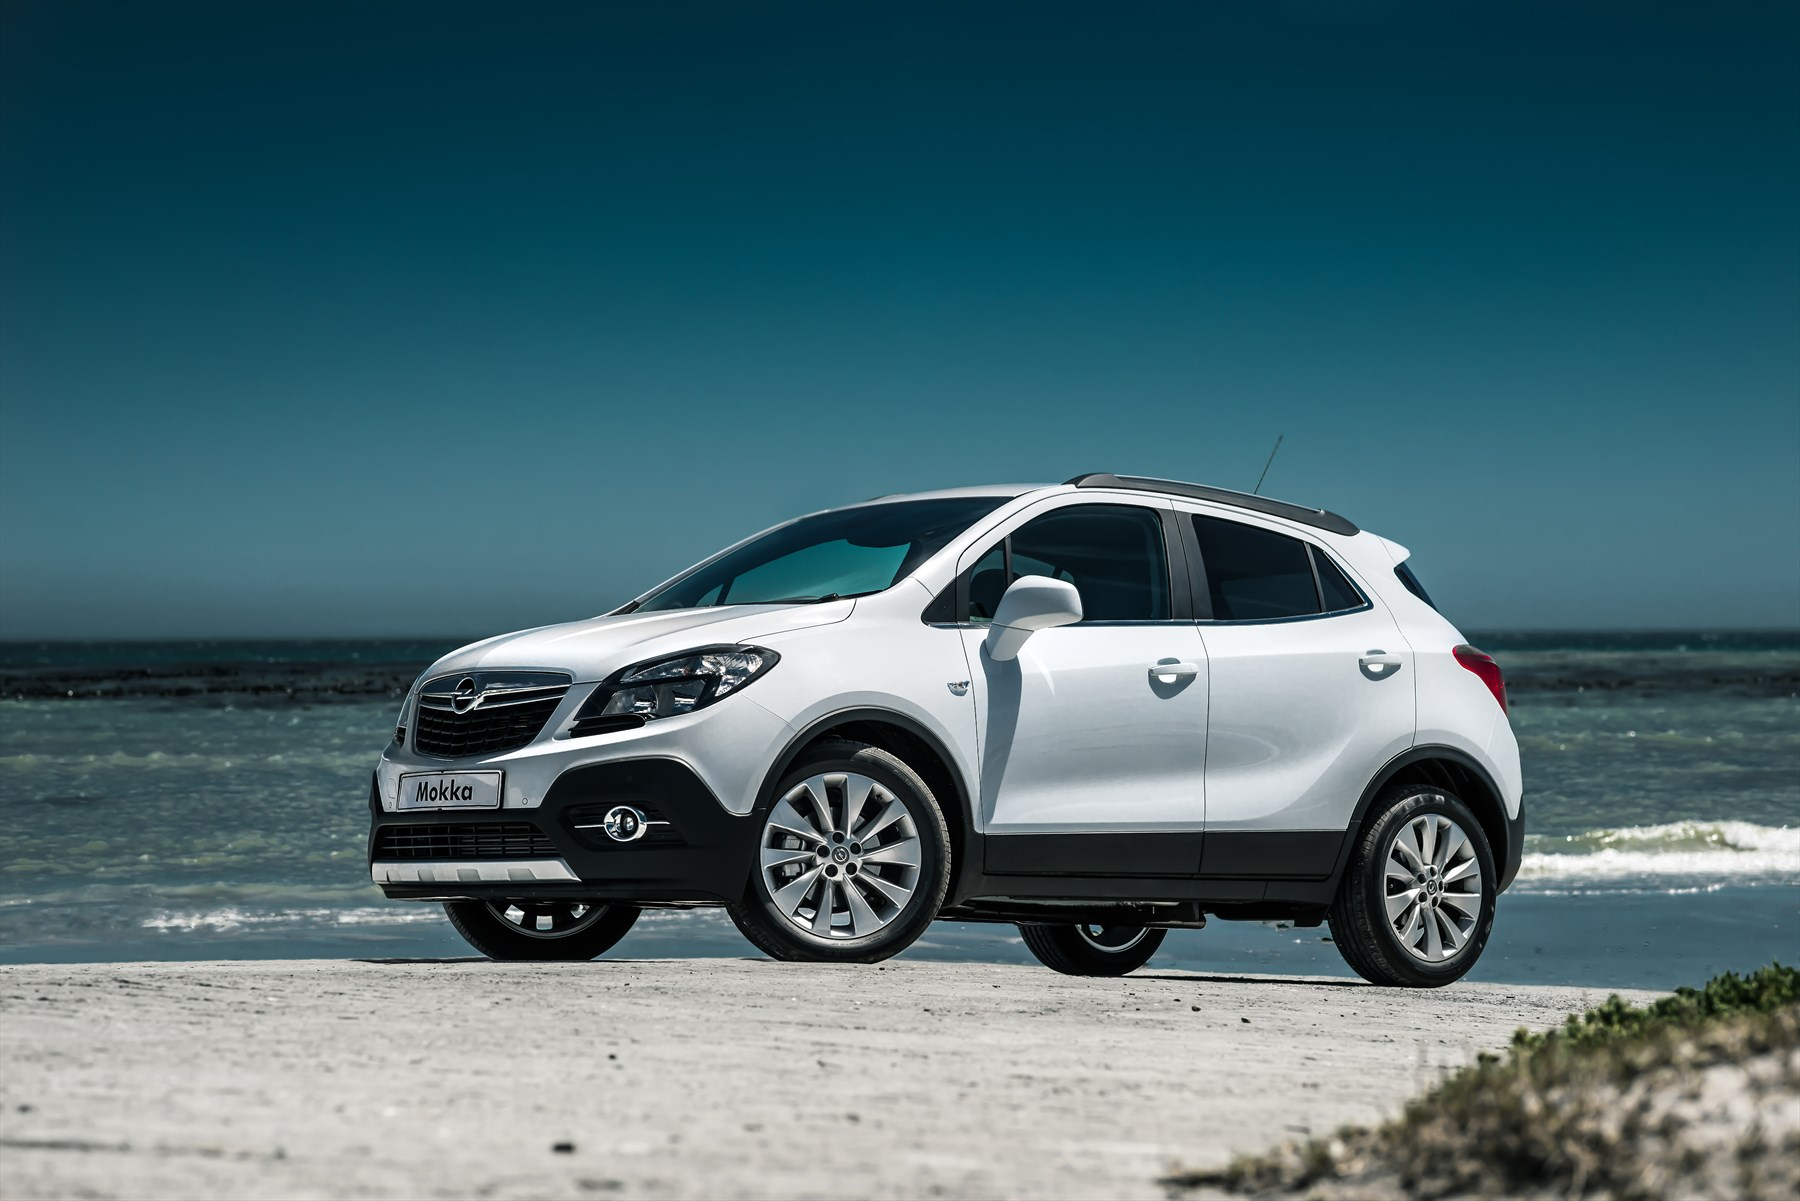 news of the week road test opel mokka ebizmotoring thegandra naidoo. Black Bedroom Furniture Sets. Home Design Ideas